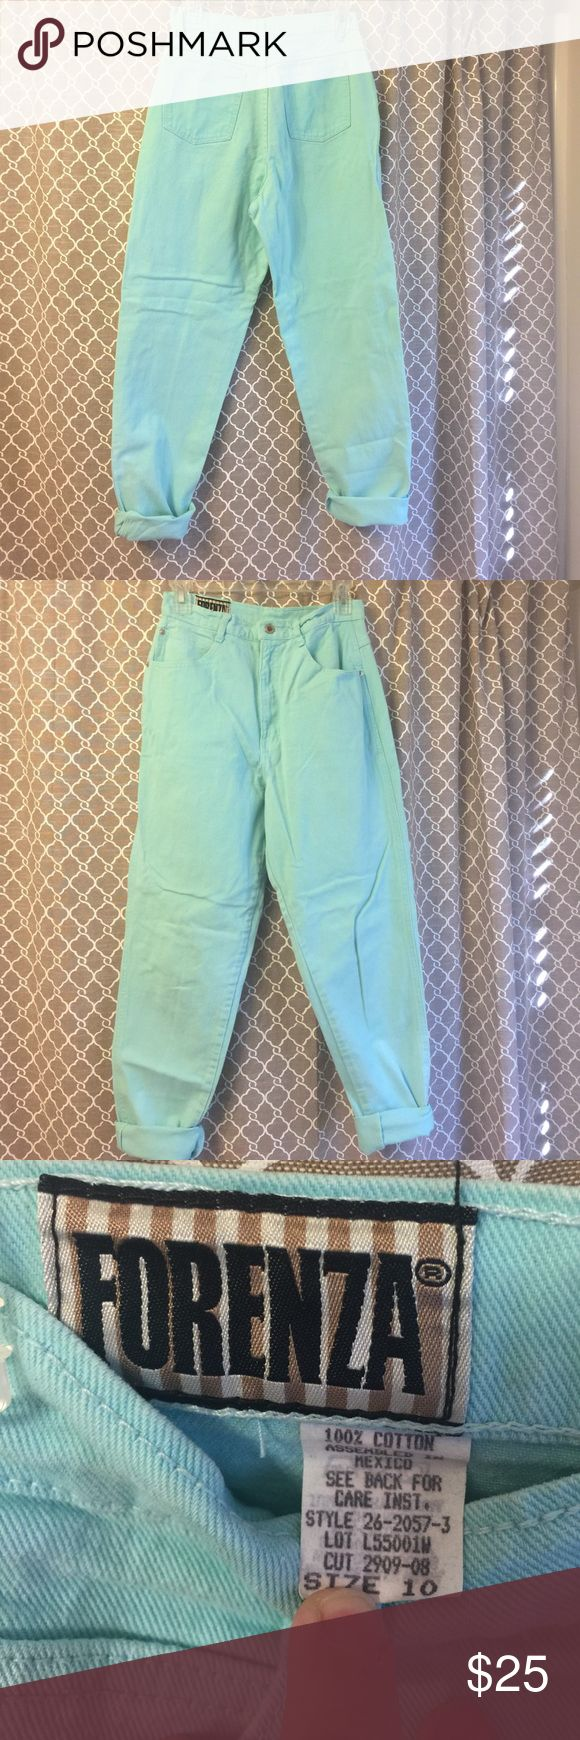 "80's Vintage Forenza  high rise aqua jeans Vintage aqua high rise jeans. Very 80's.  28 1/2""inseam waist measures 14"" across forenza Jeans"